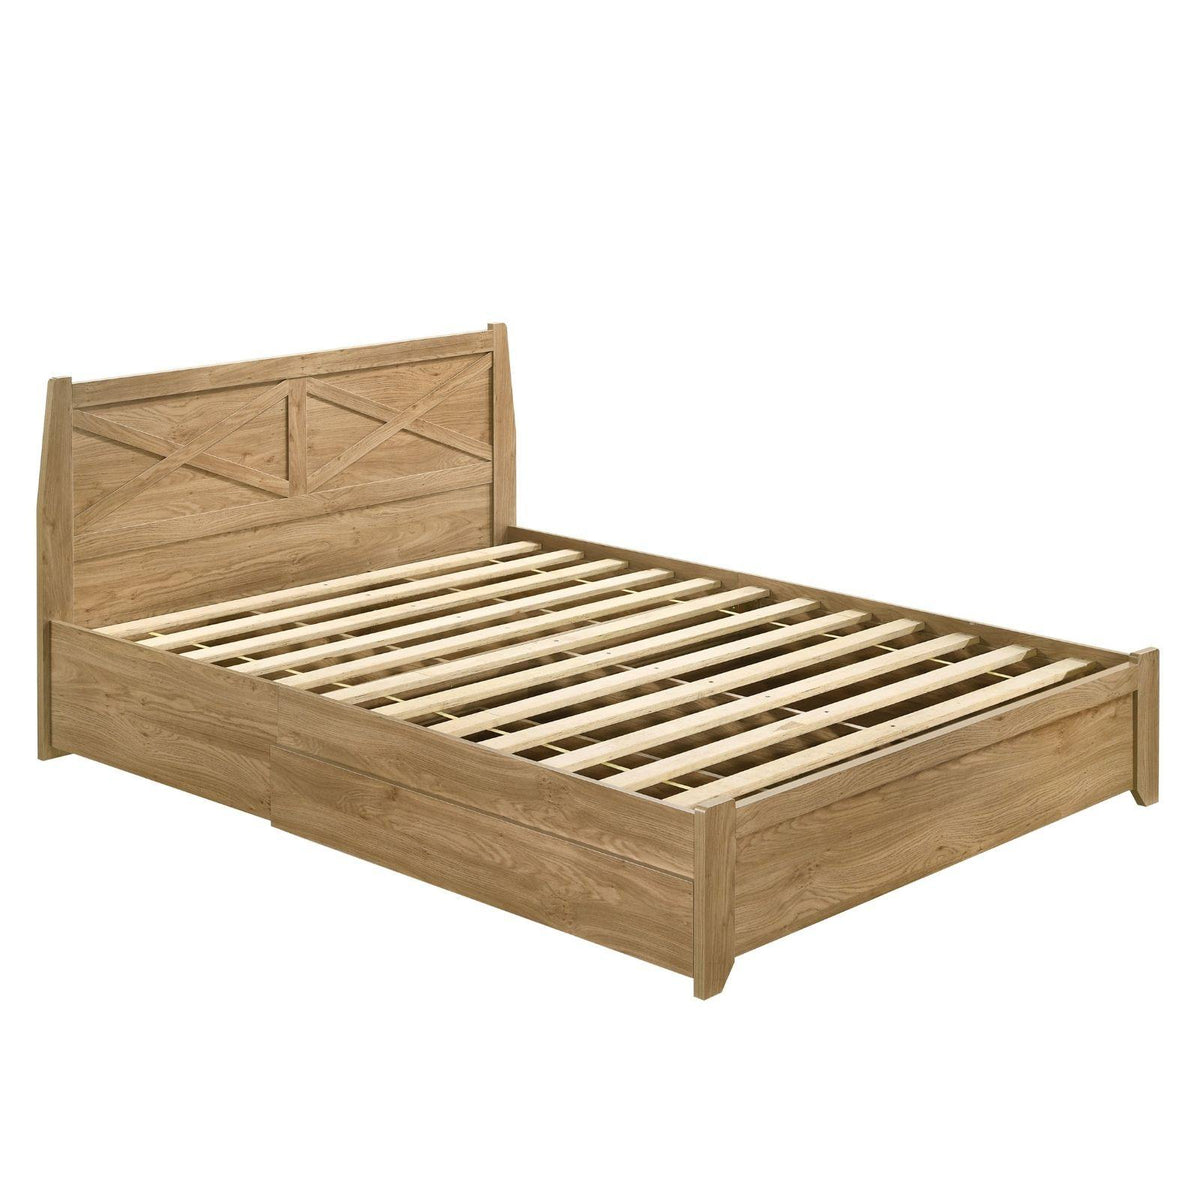 Mica Natural Wooden Bed Frame with Storage Drawers King - Evopia